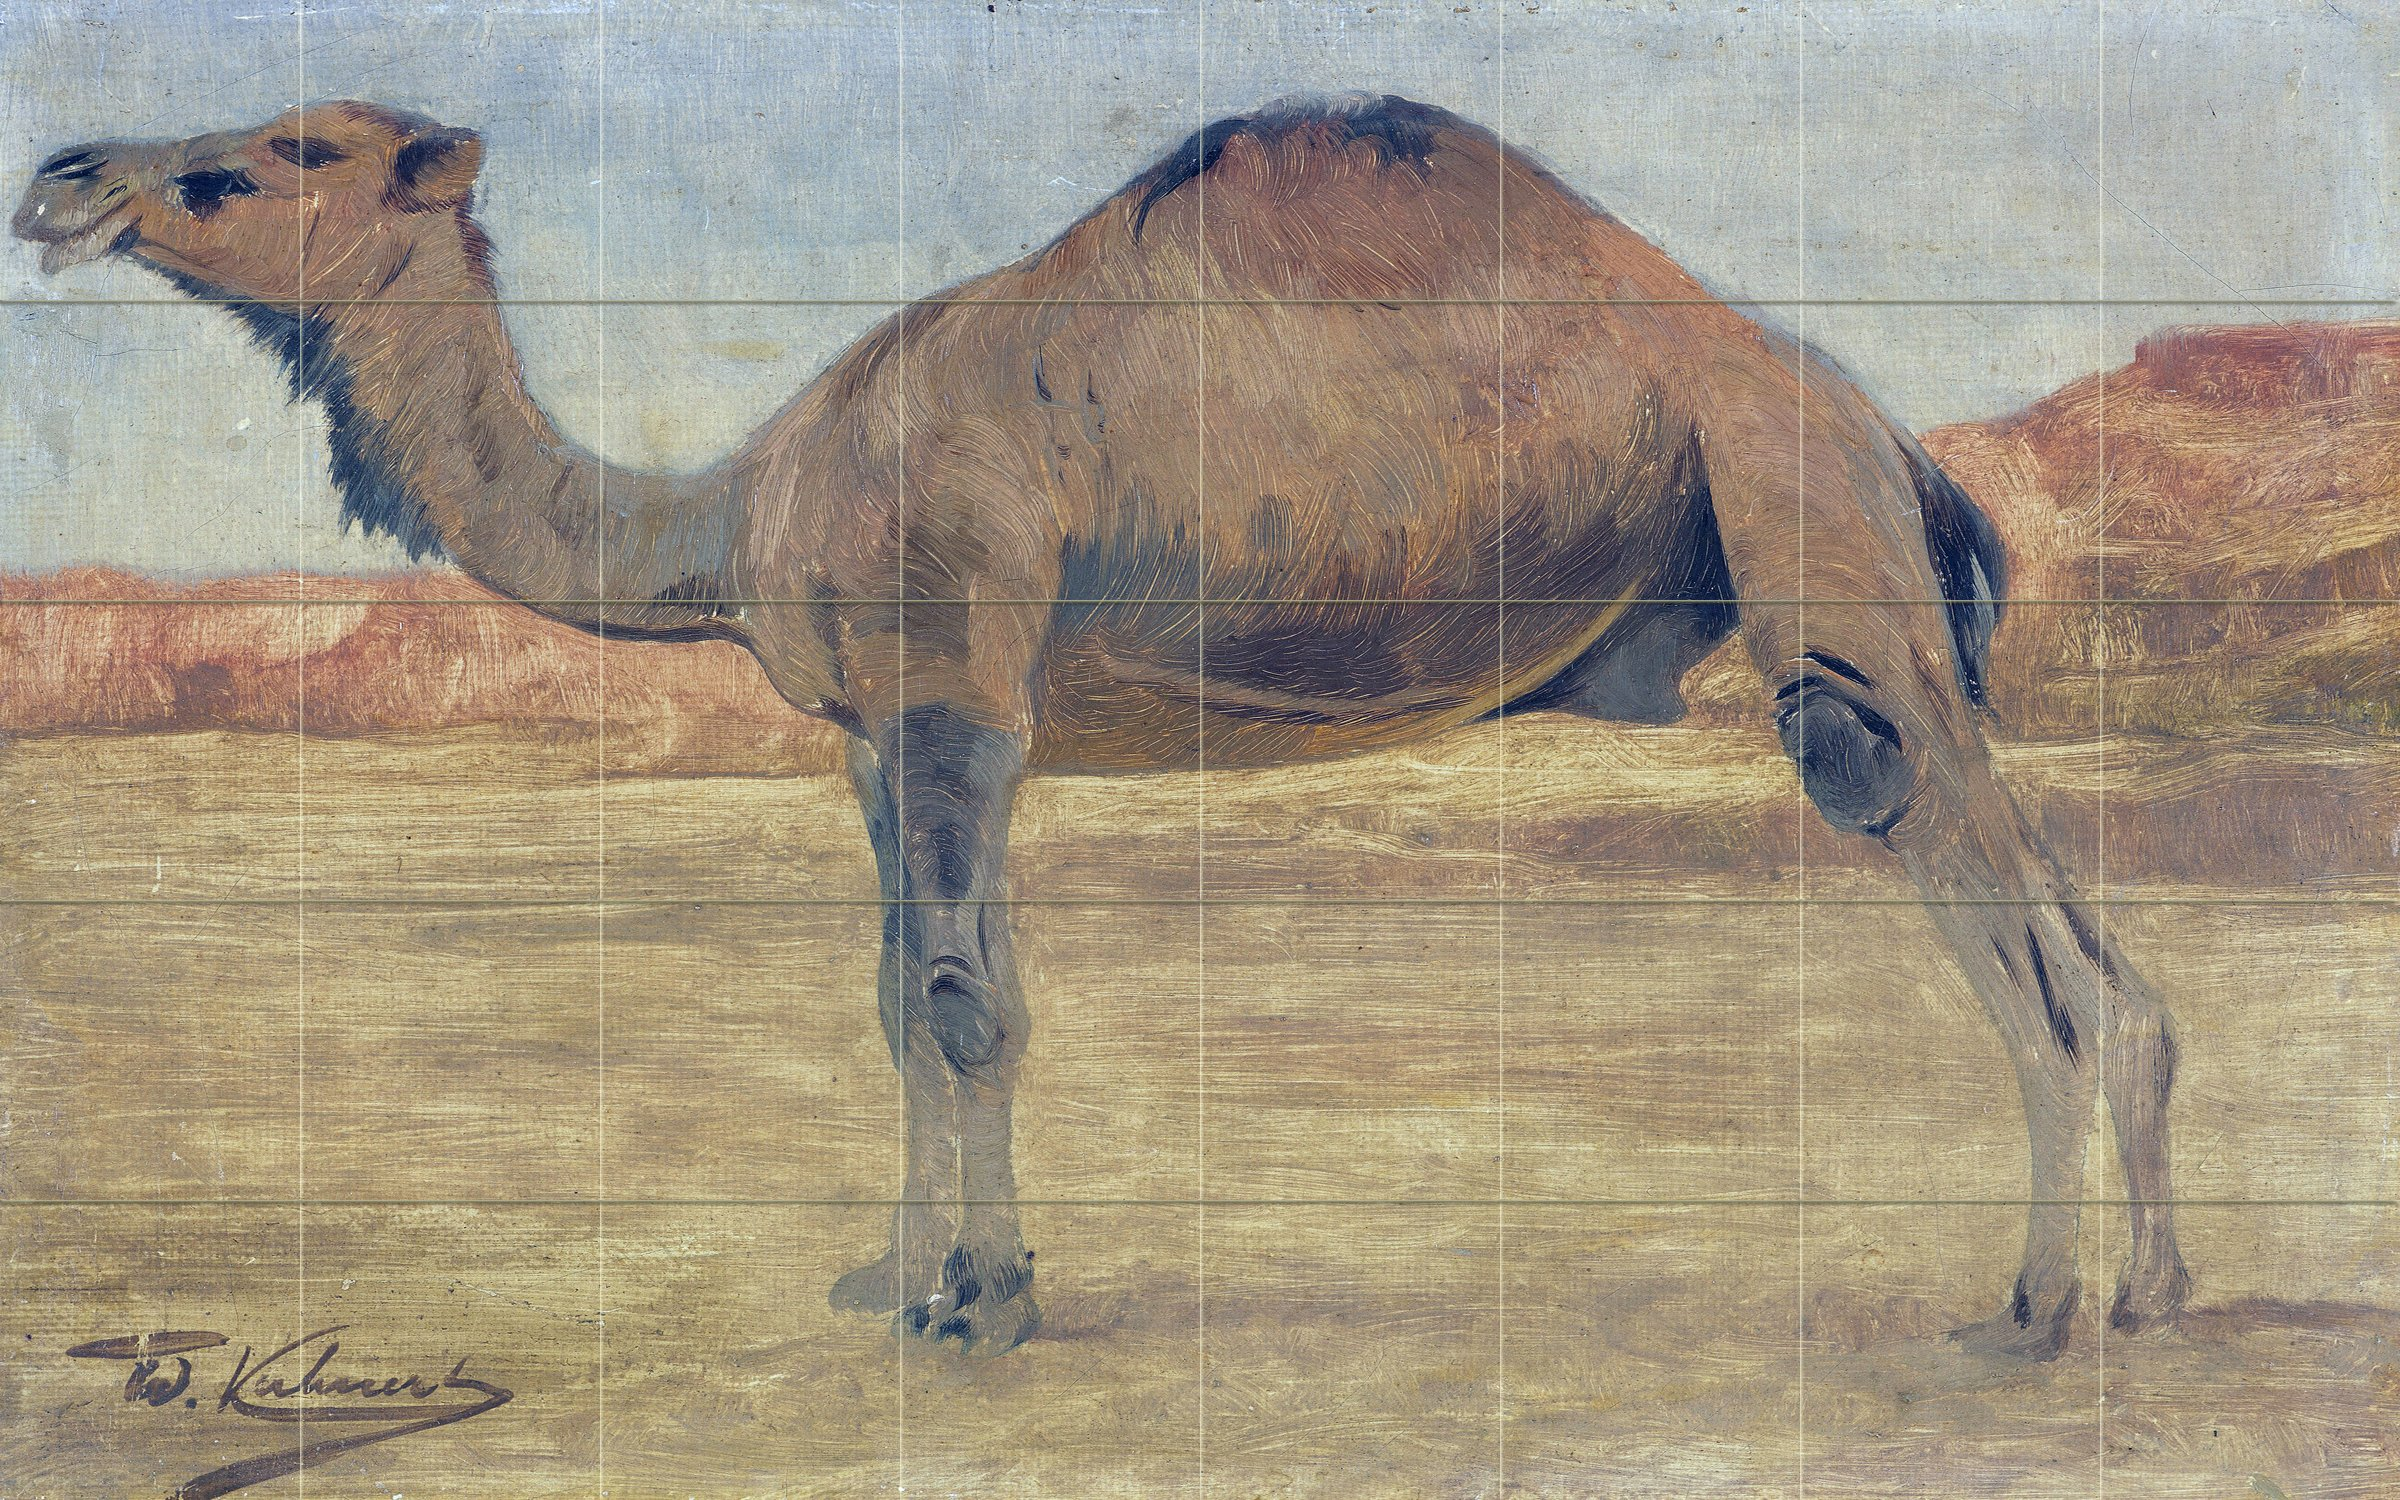 Landscape africa dunes camel by Wilhelm Kuhnert Spielende Tile Mural Kitchen Bathroom Wall Backsplash Behind Stove Range Sink Splashback 8x5 8'' Ceramic, Matte